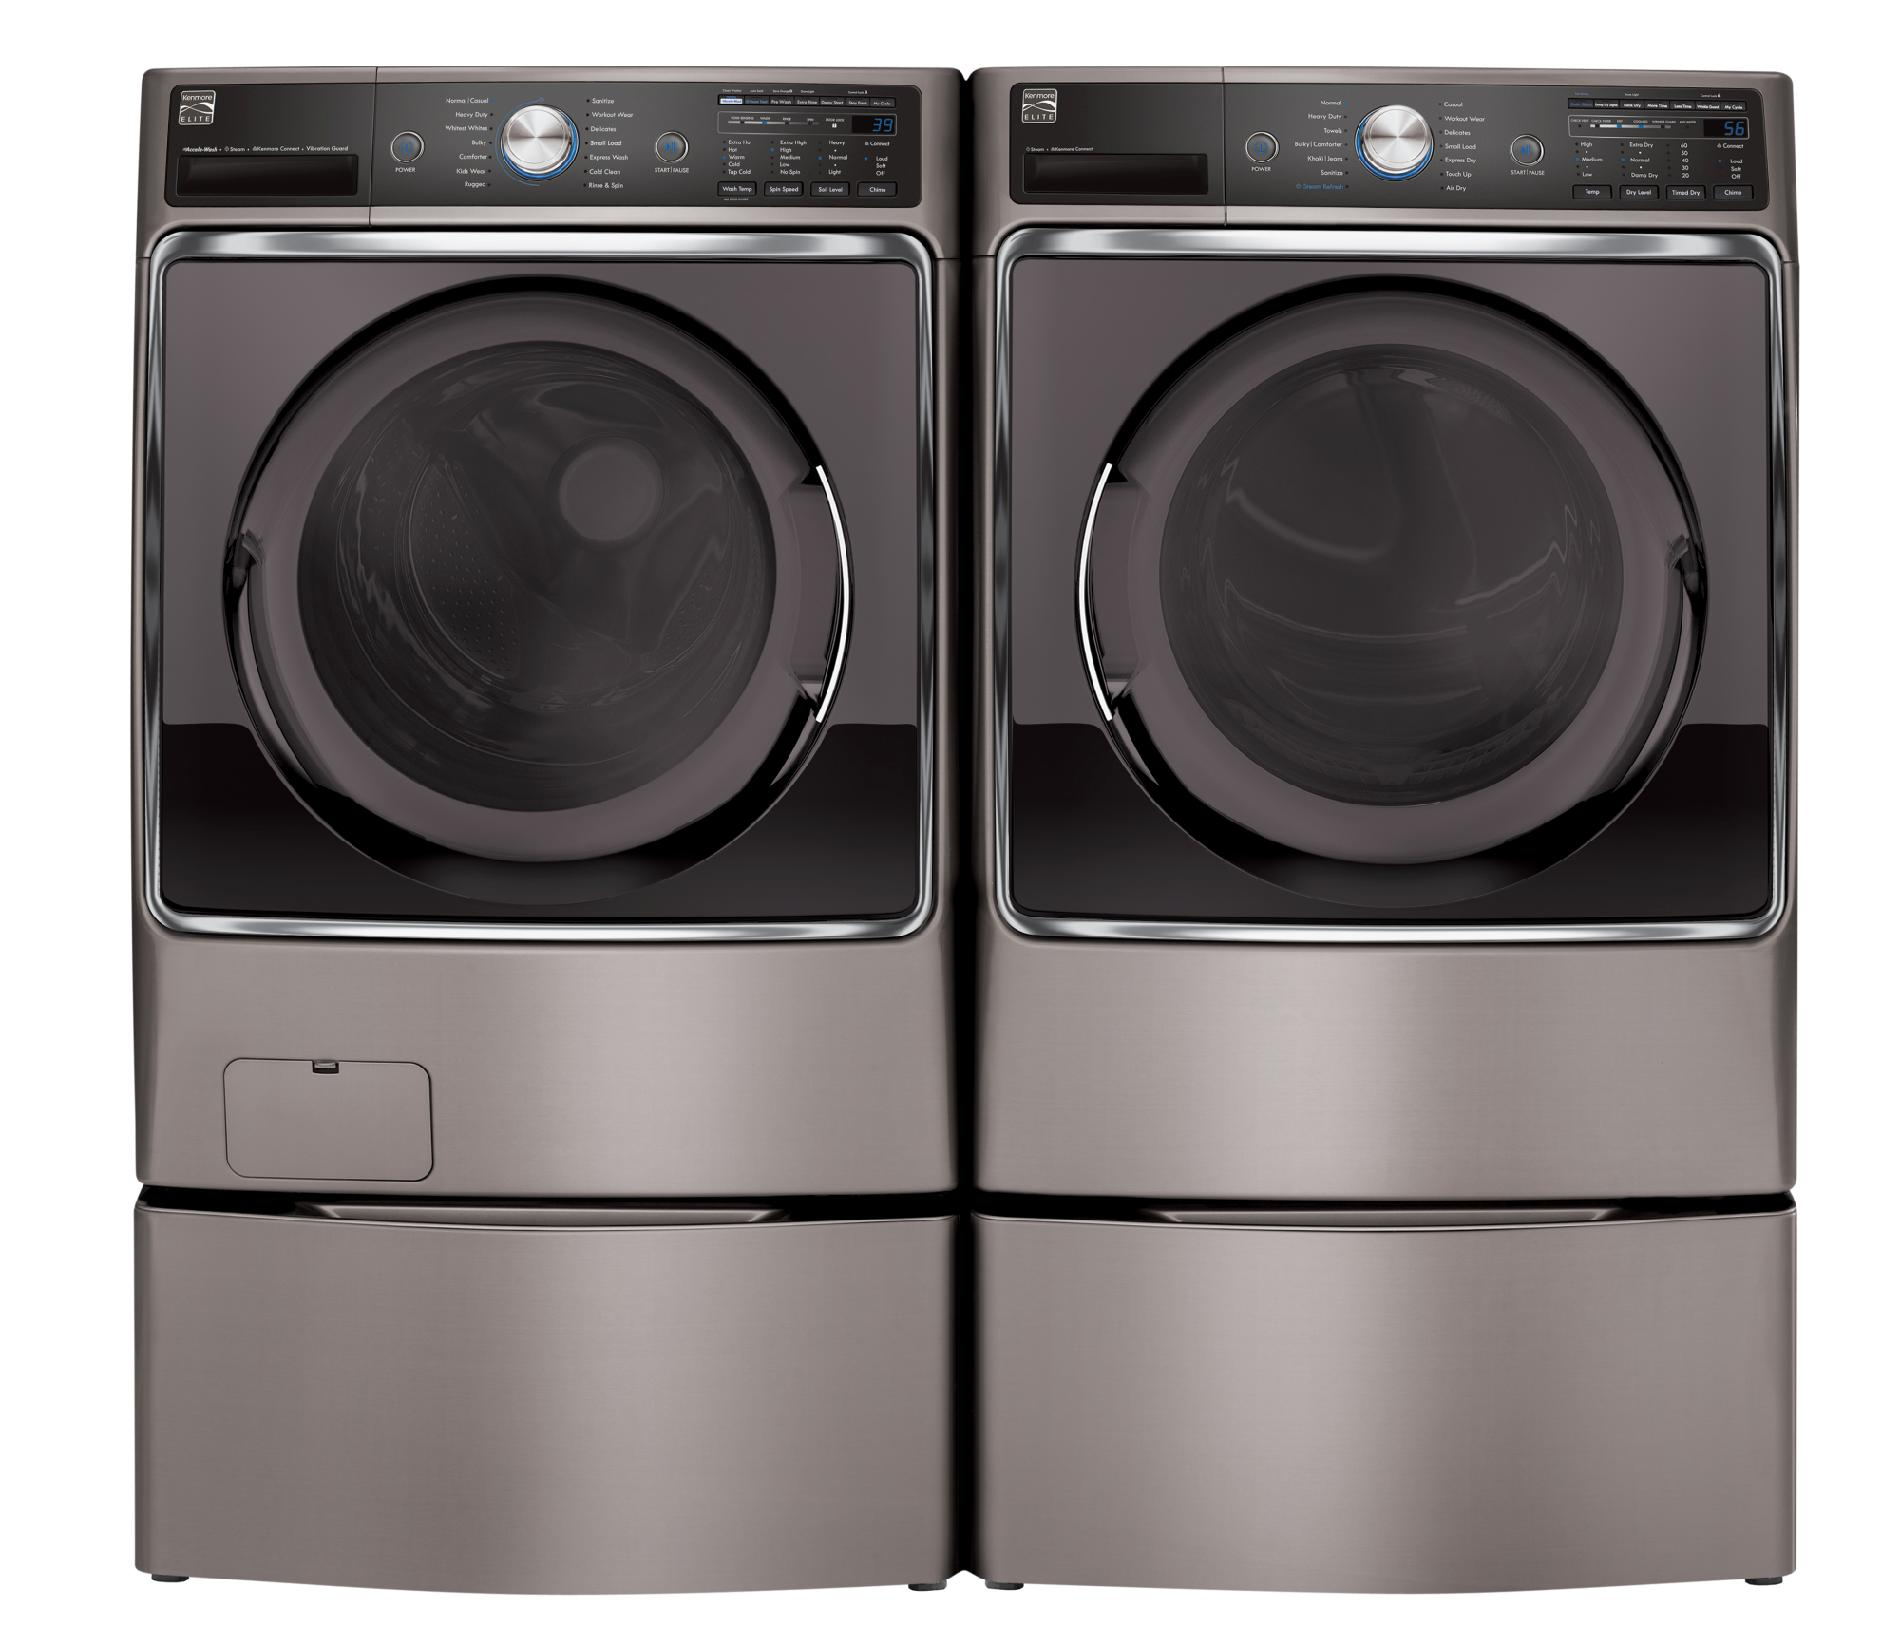 Kenmore Elite 41073 5.2 cu. ft. Front-Load Washer - Metallic Silver